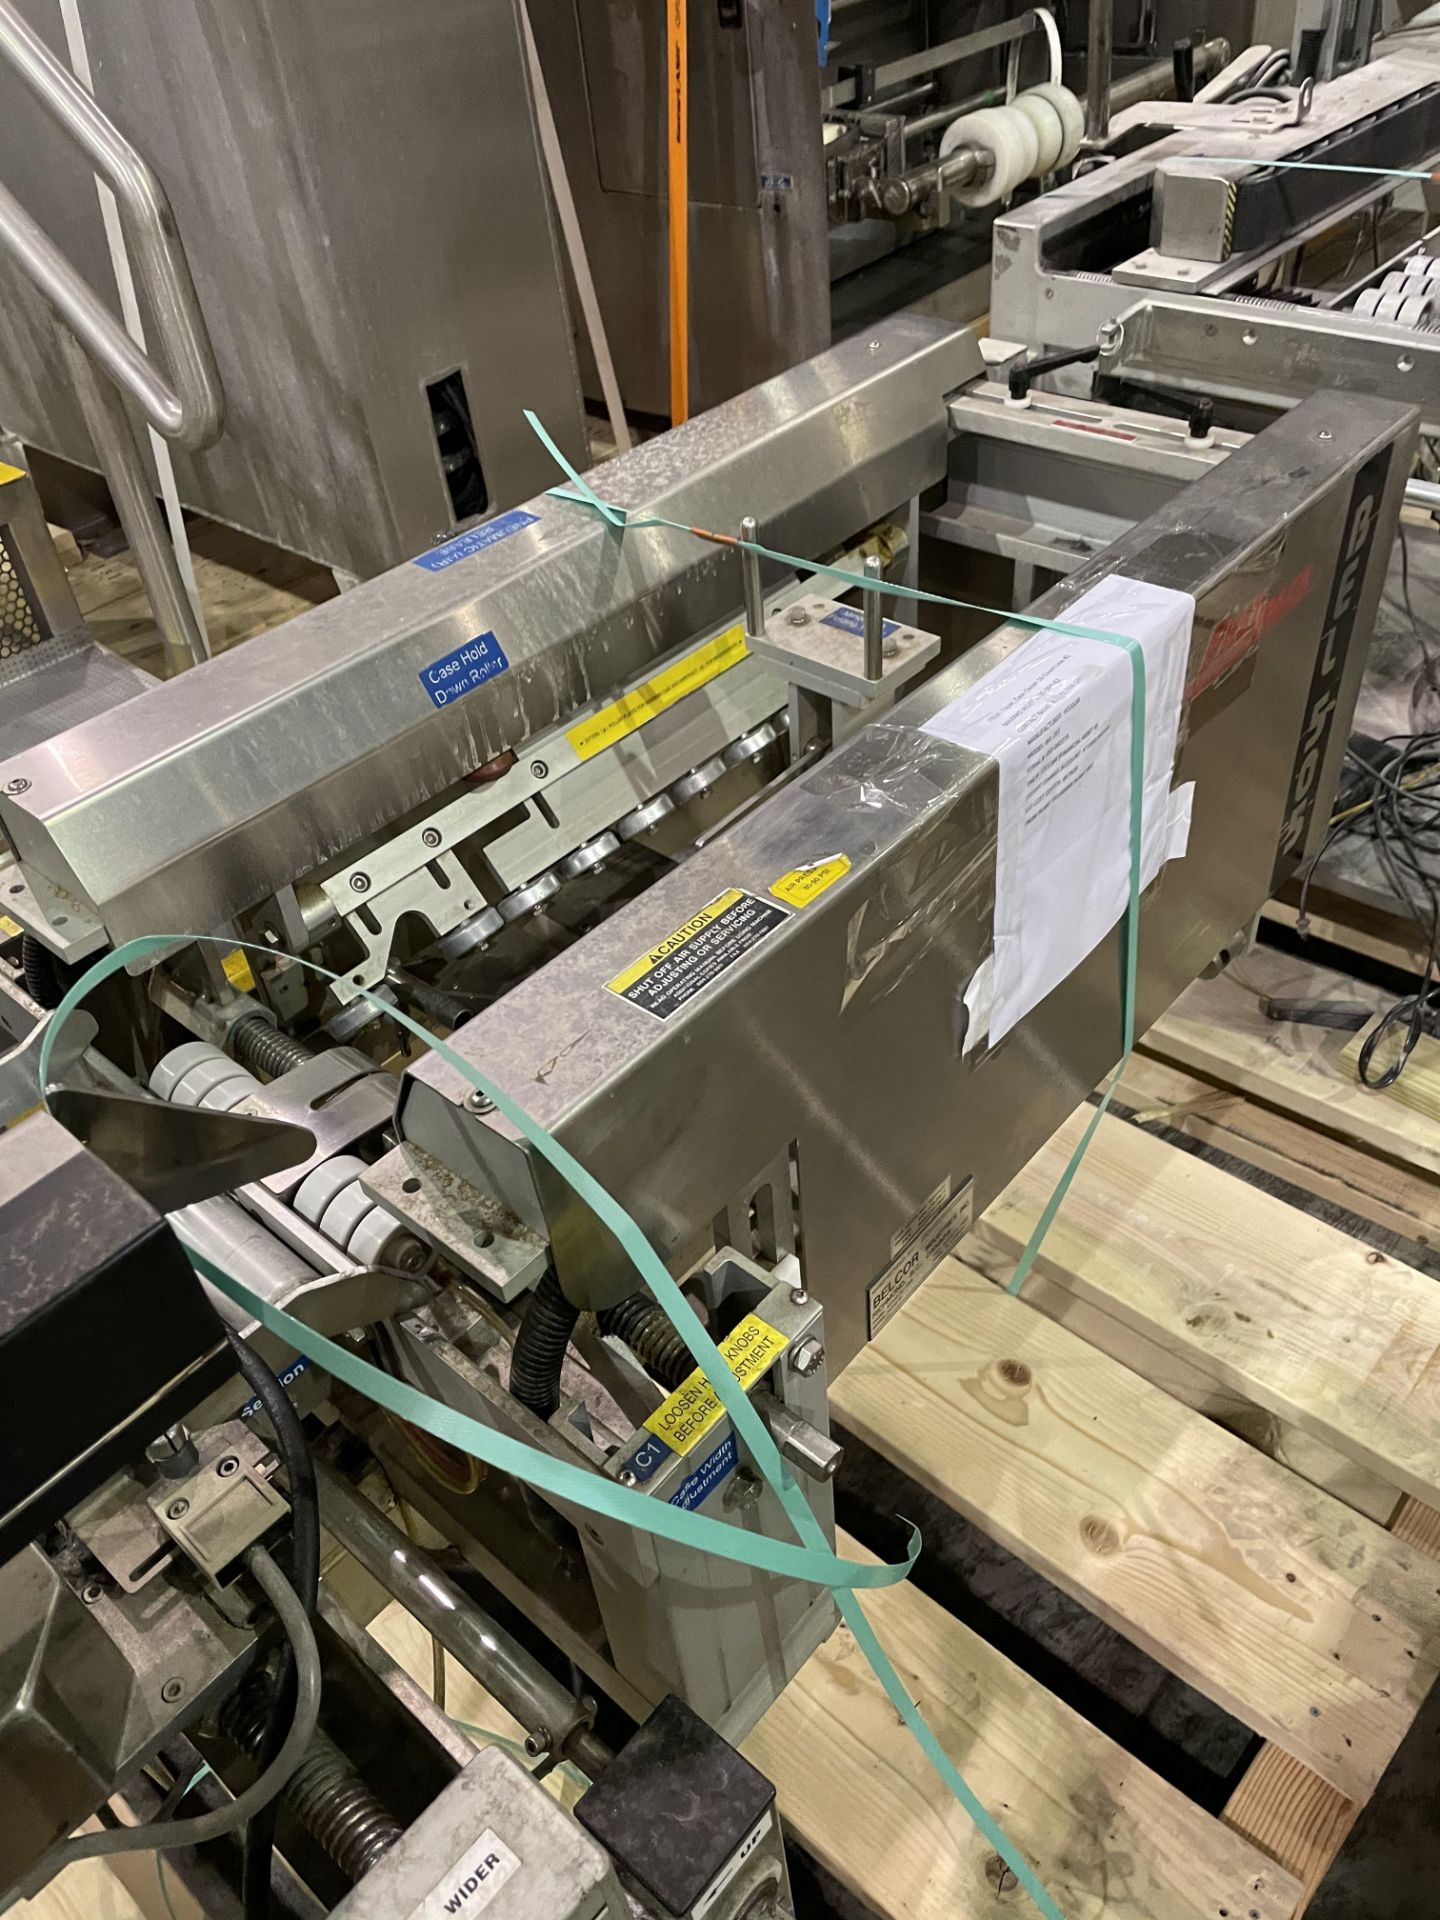 Belcor 252 Taper with Snap Folder Closer Top And Bottom Tape Heads and Marsh Patrion Printer Loading - Image 6 of 8